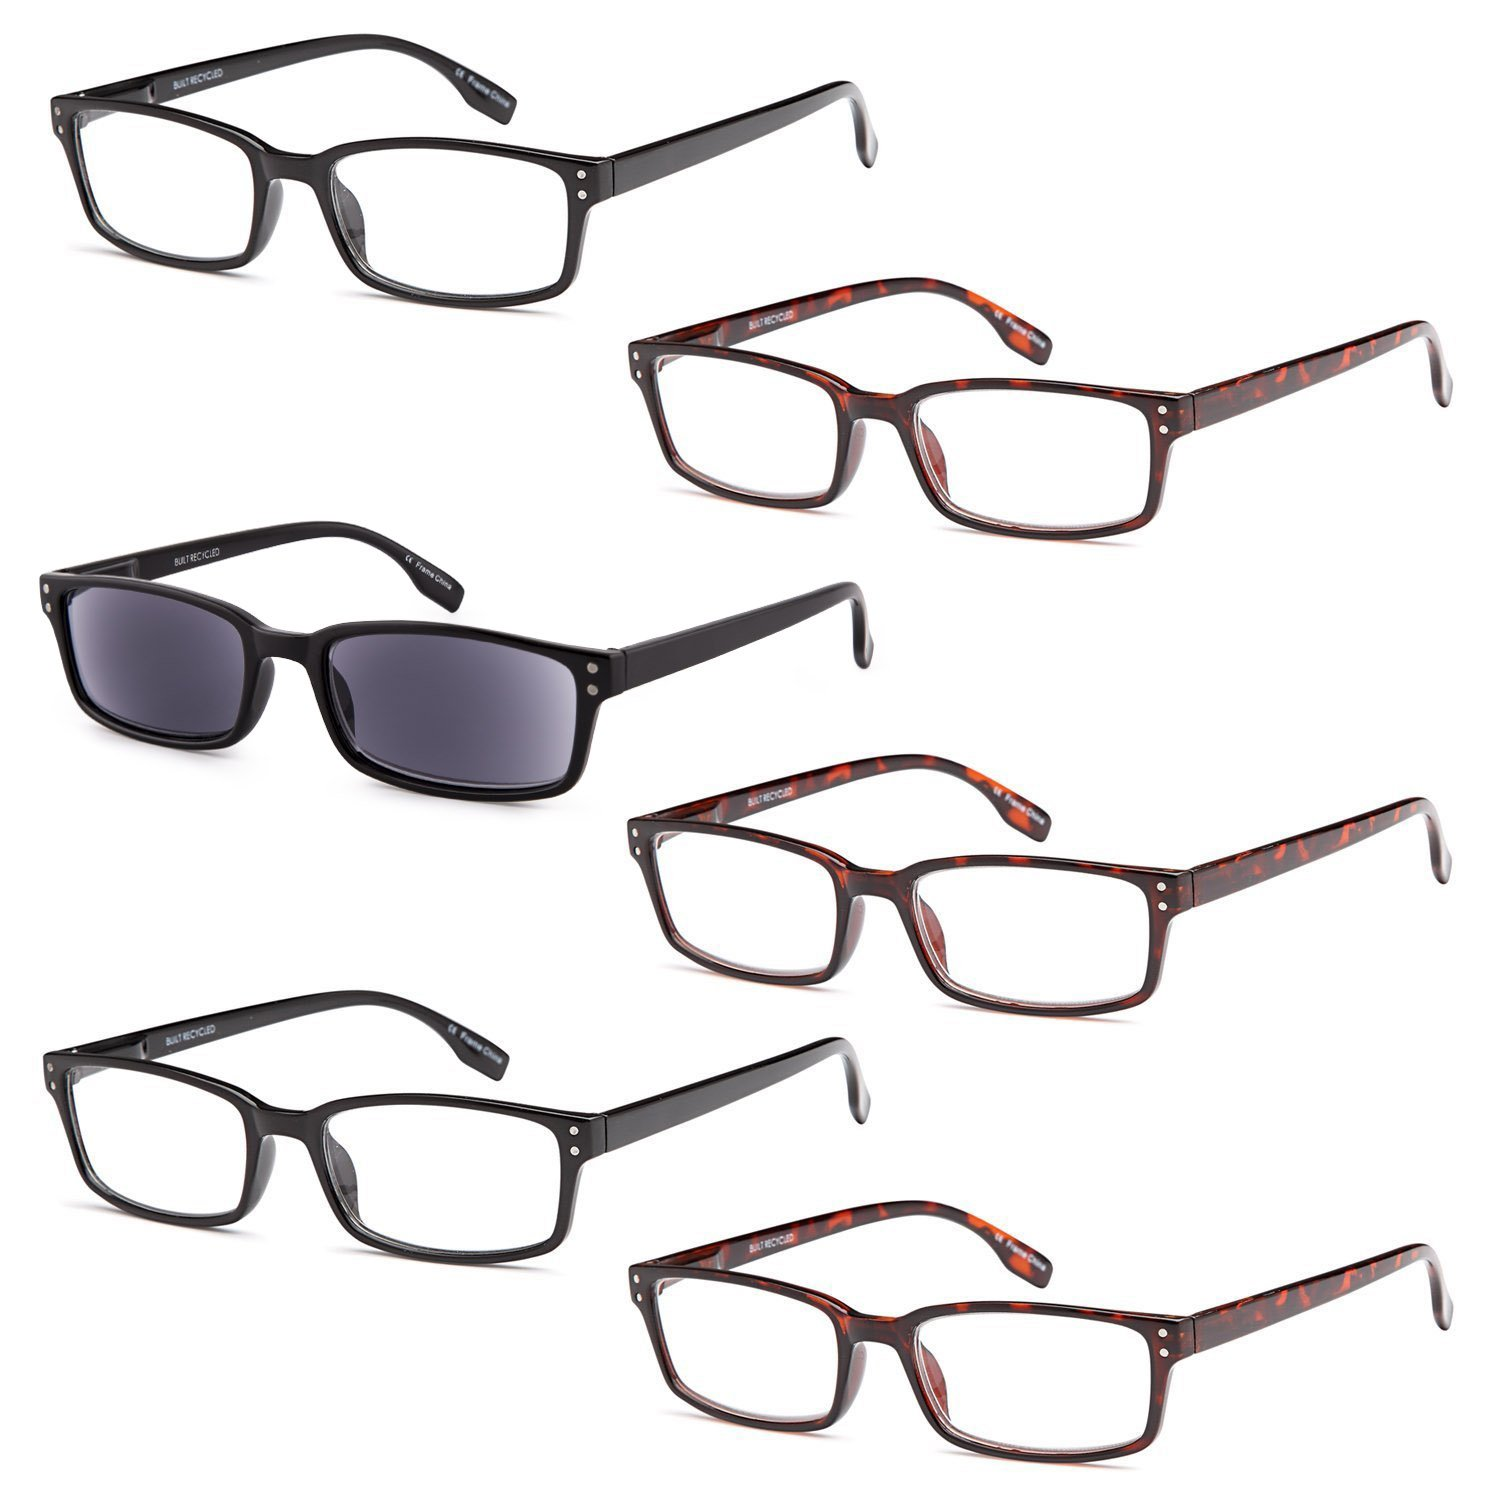 6 pairs s readers quality hinge reading glasses